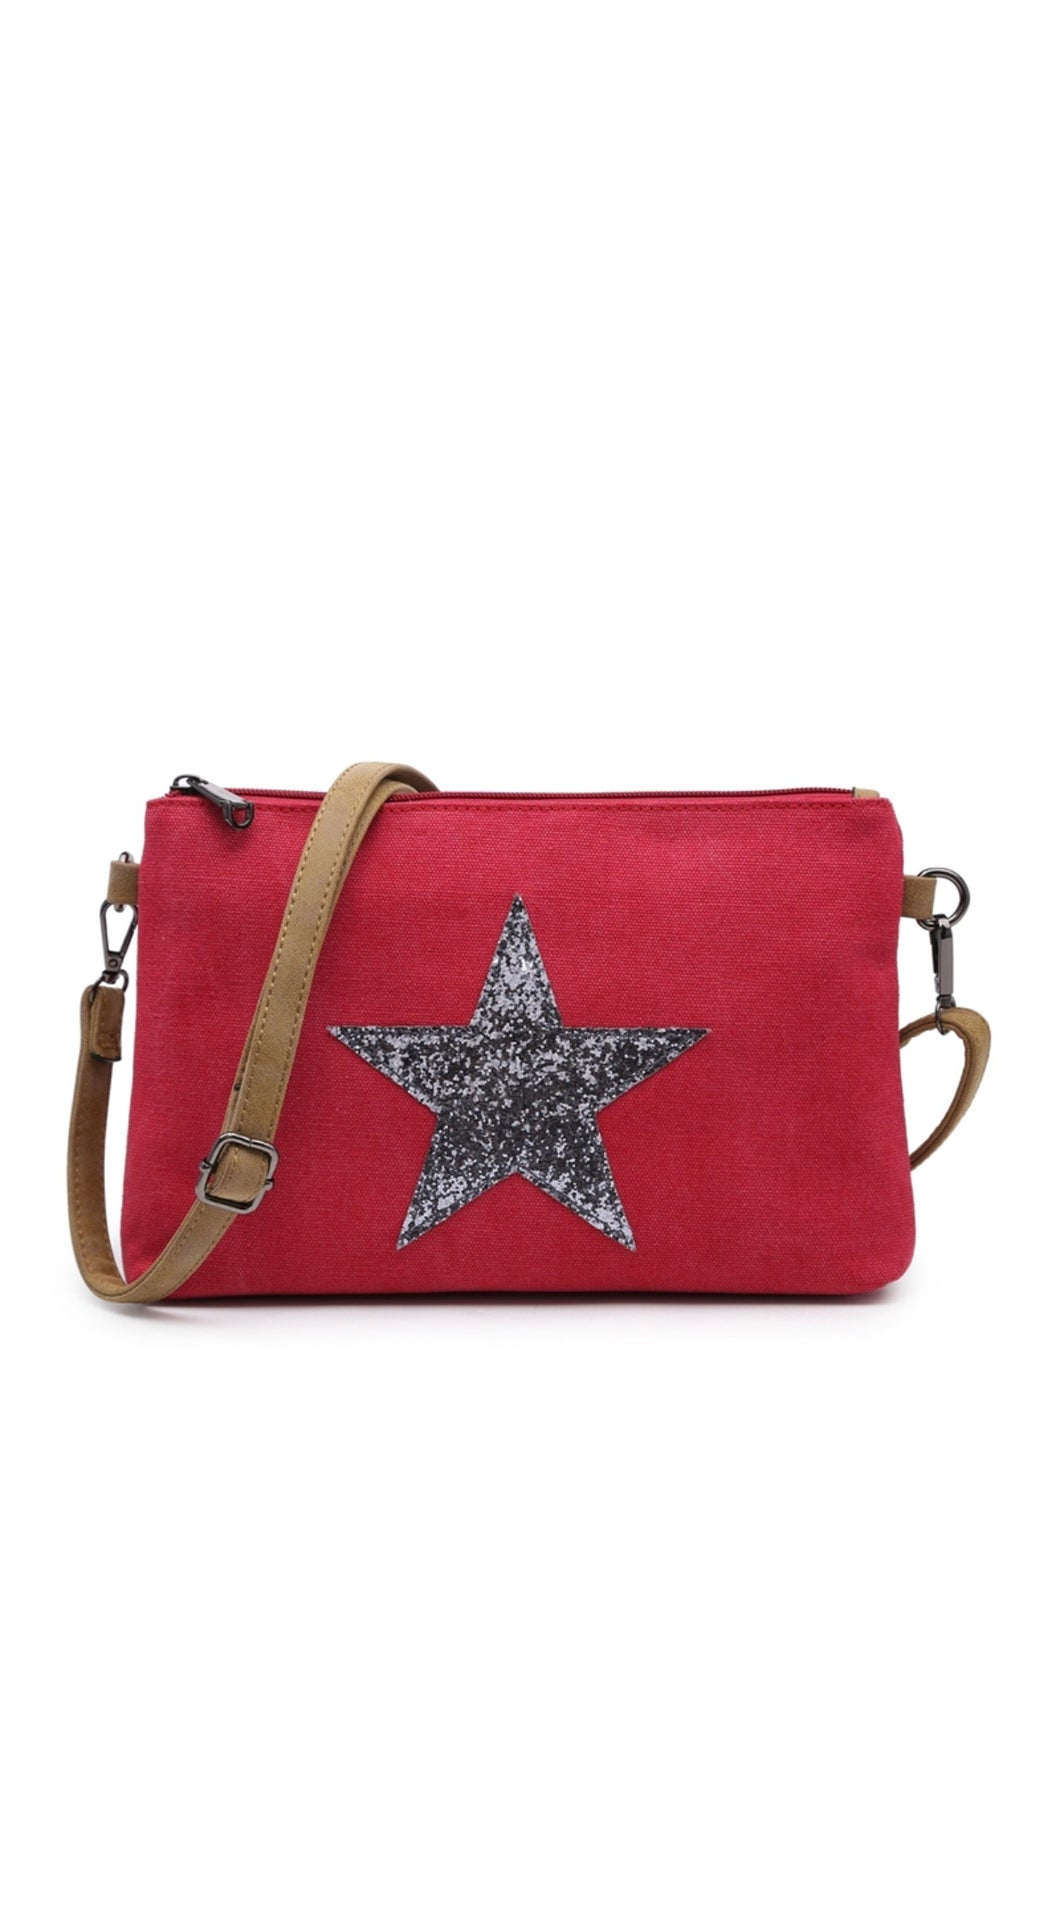 Red glitter star clutch - shoulder strap included